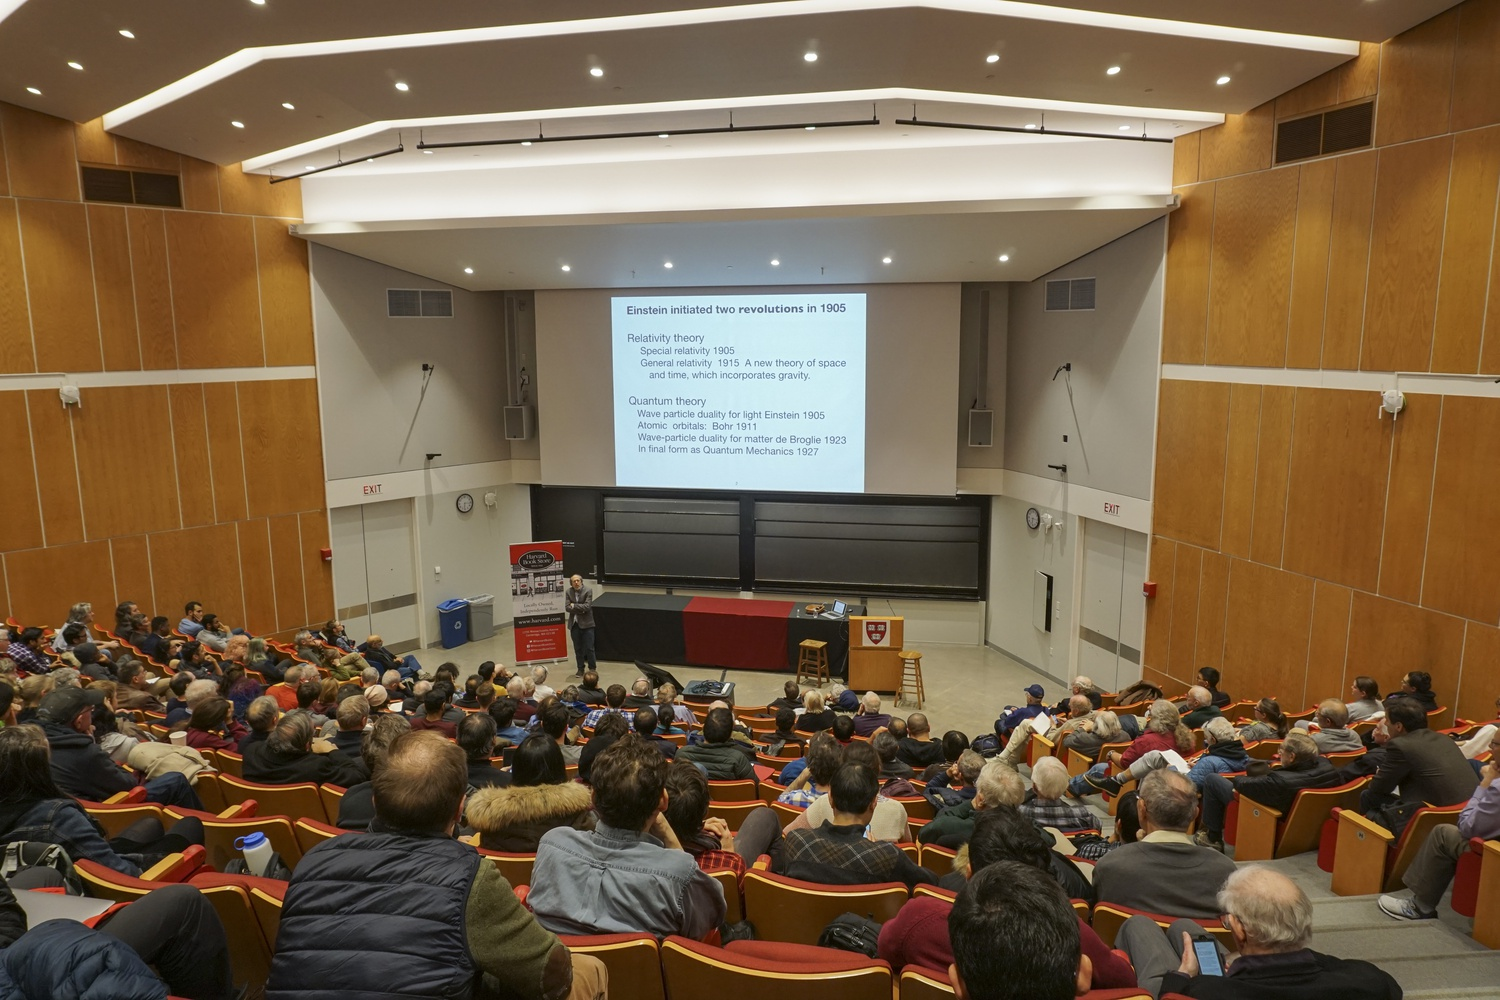 """Lee Smolin, author of the recently released book """"Einstein's Unfinished Revolution"""", gives a talk on Wednesday evening in the Science Center. His book discusses Einstein's quantum mechanics and its limitations on our understanding of the world."""